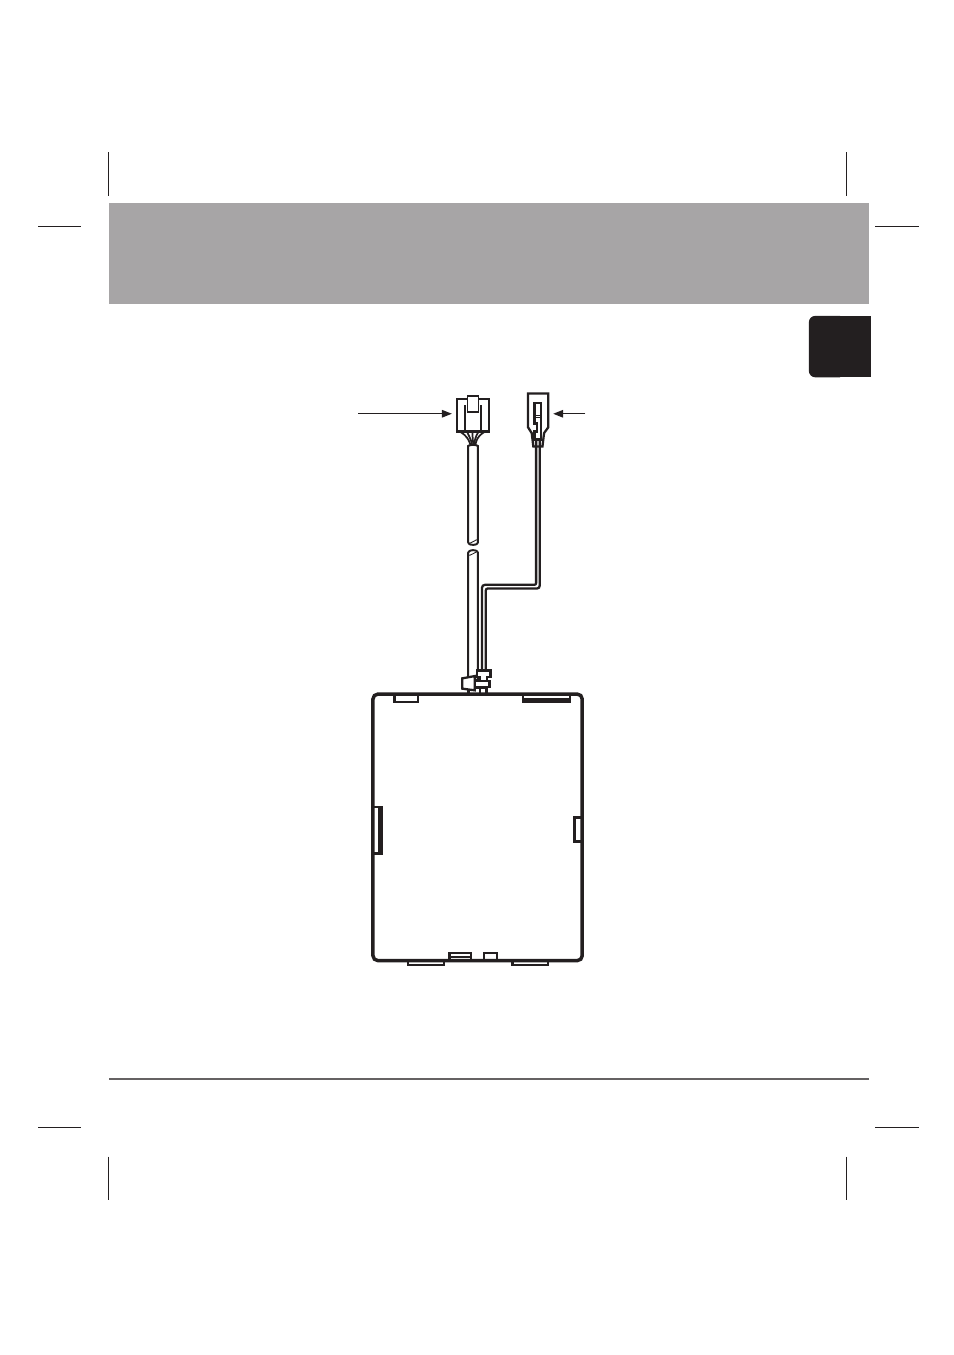 Wiring Diagram Tel003 Clarion Blt433 User Manual Page 17 27